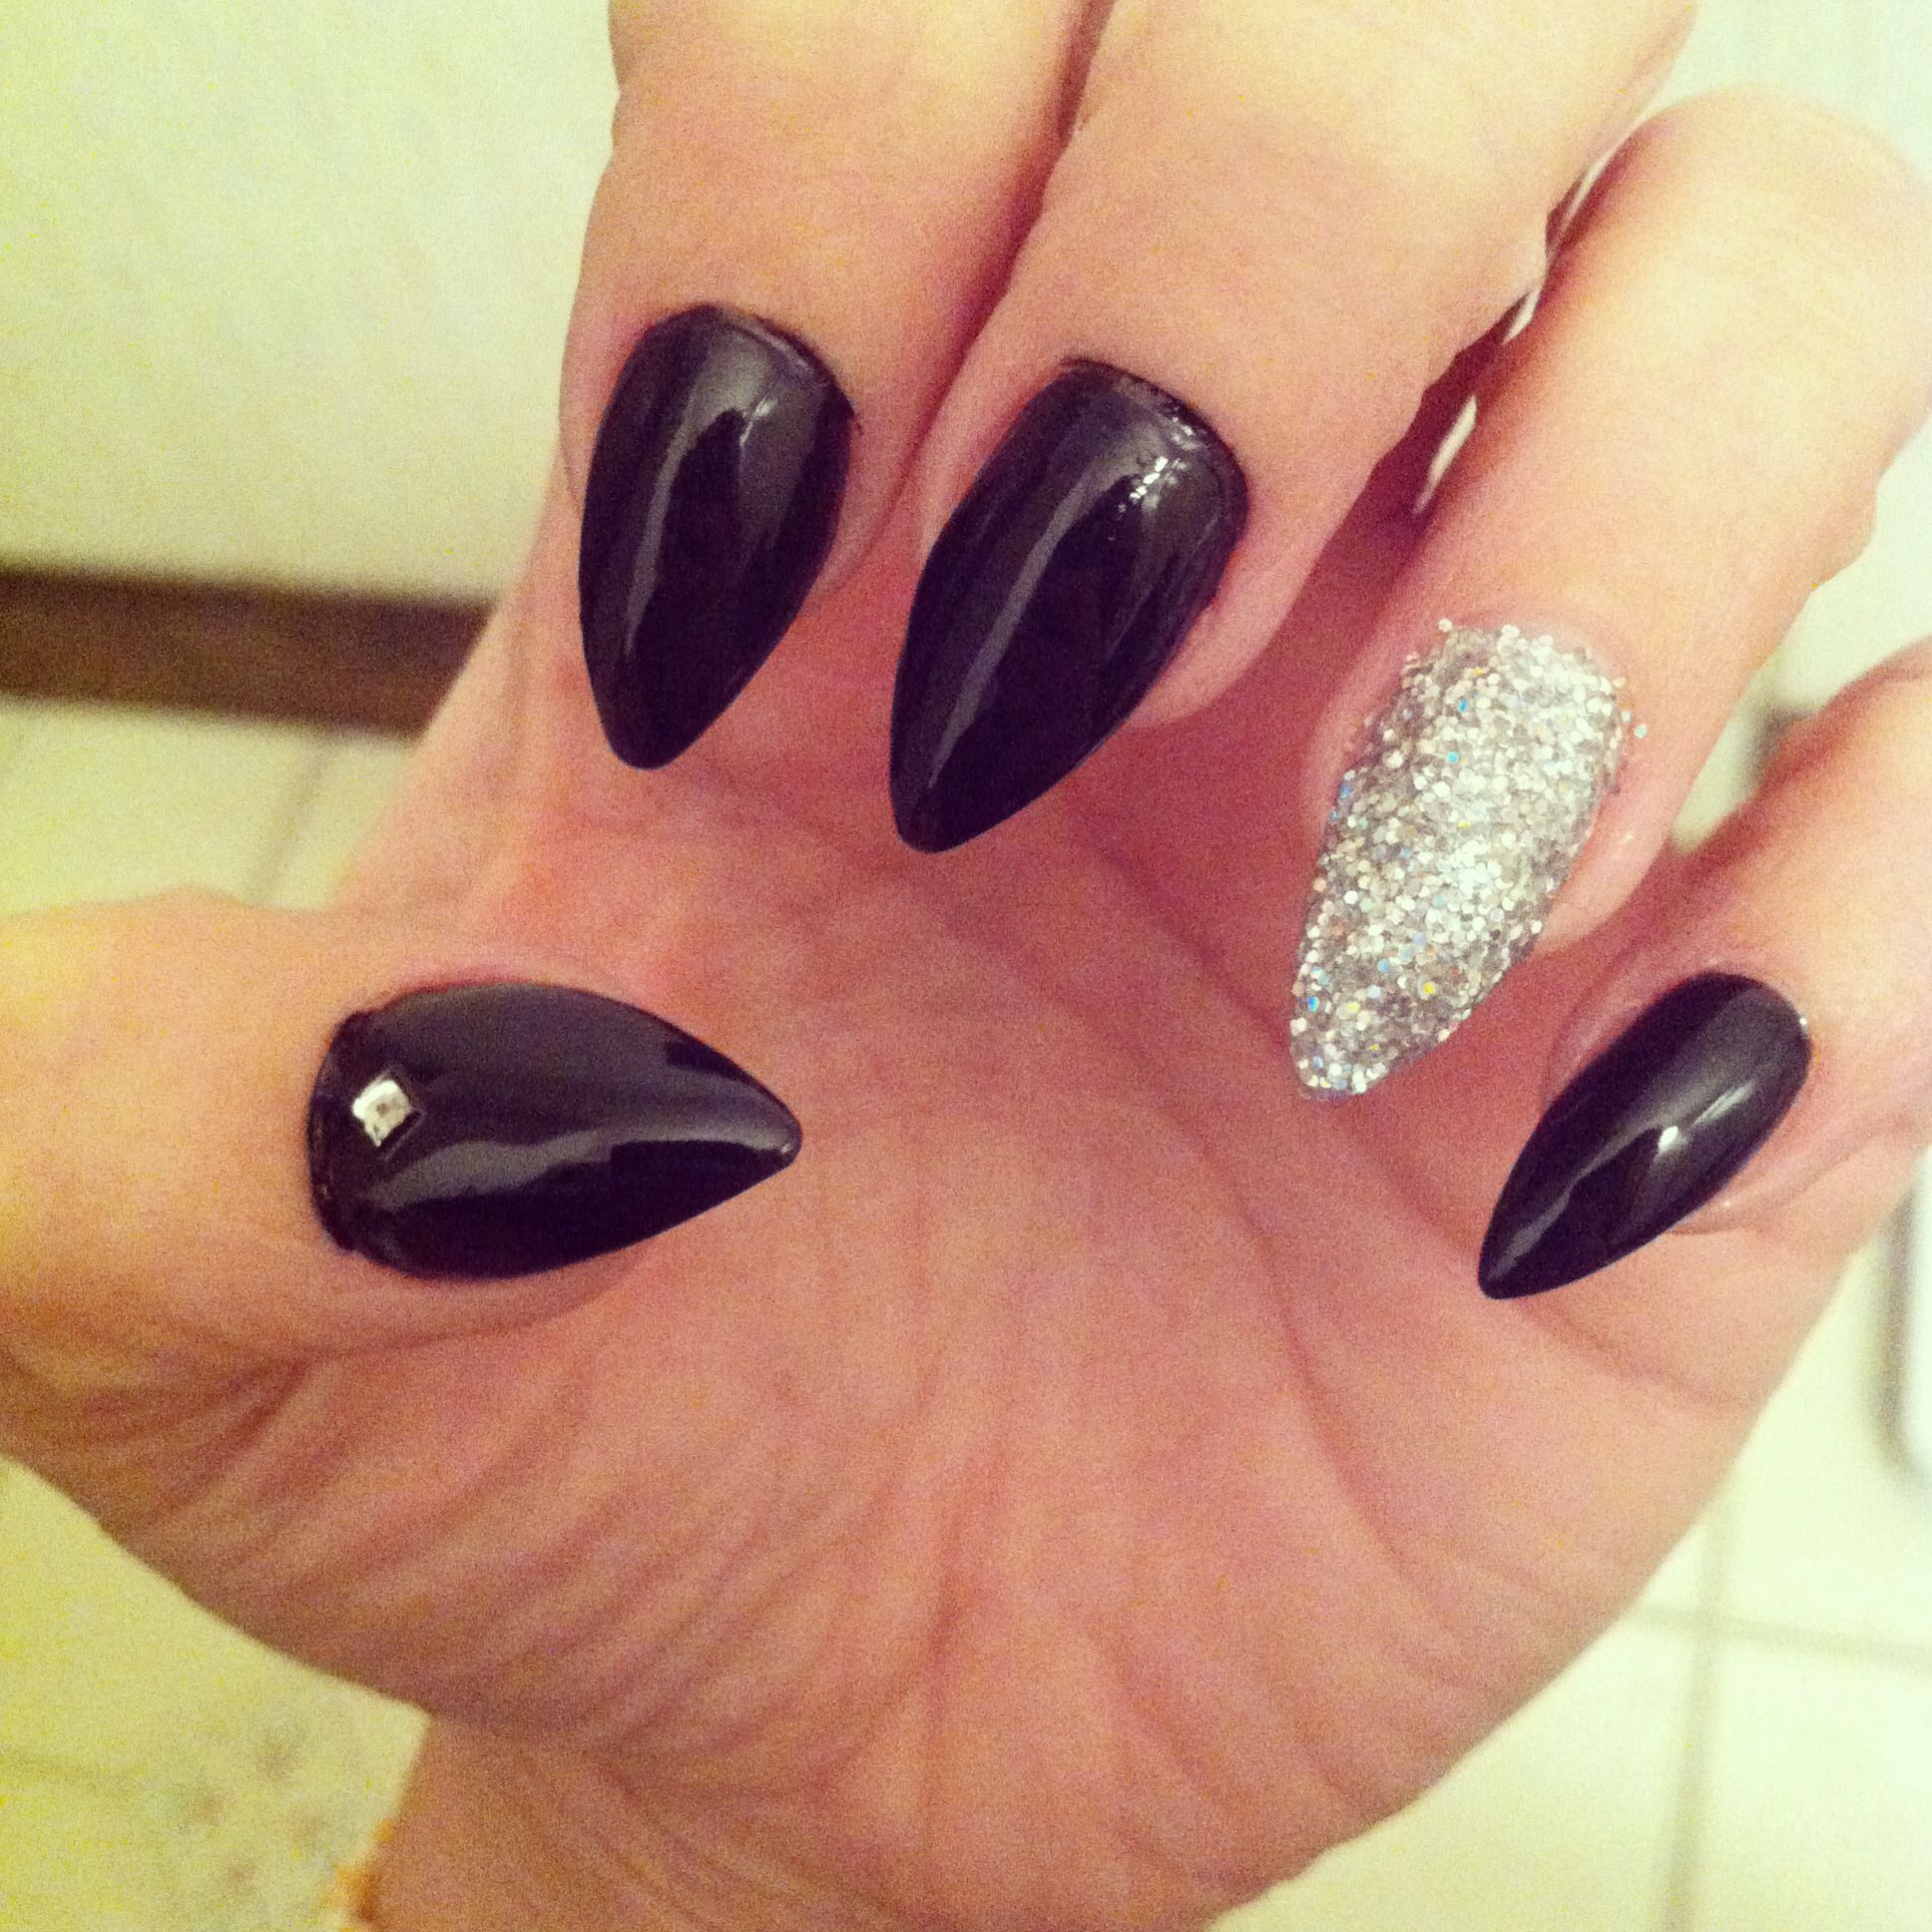 Black and silver stiletto nails | Nails | Pinterest ...